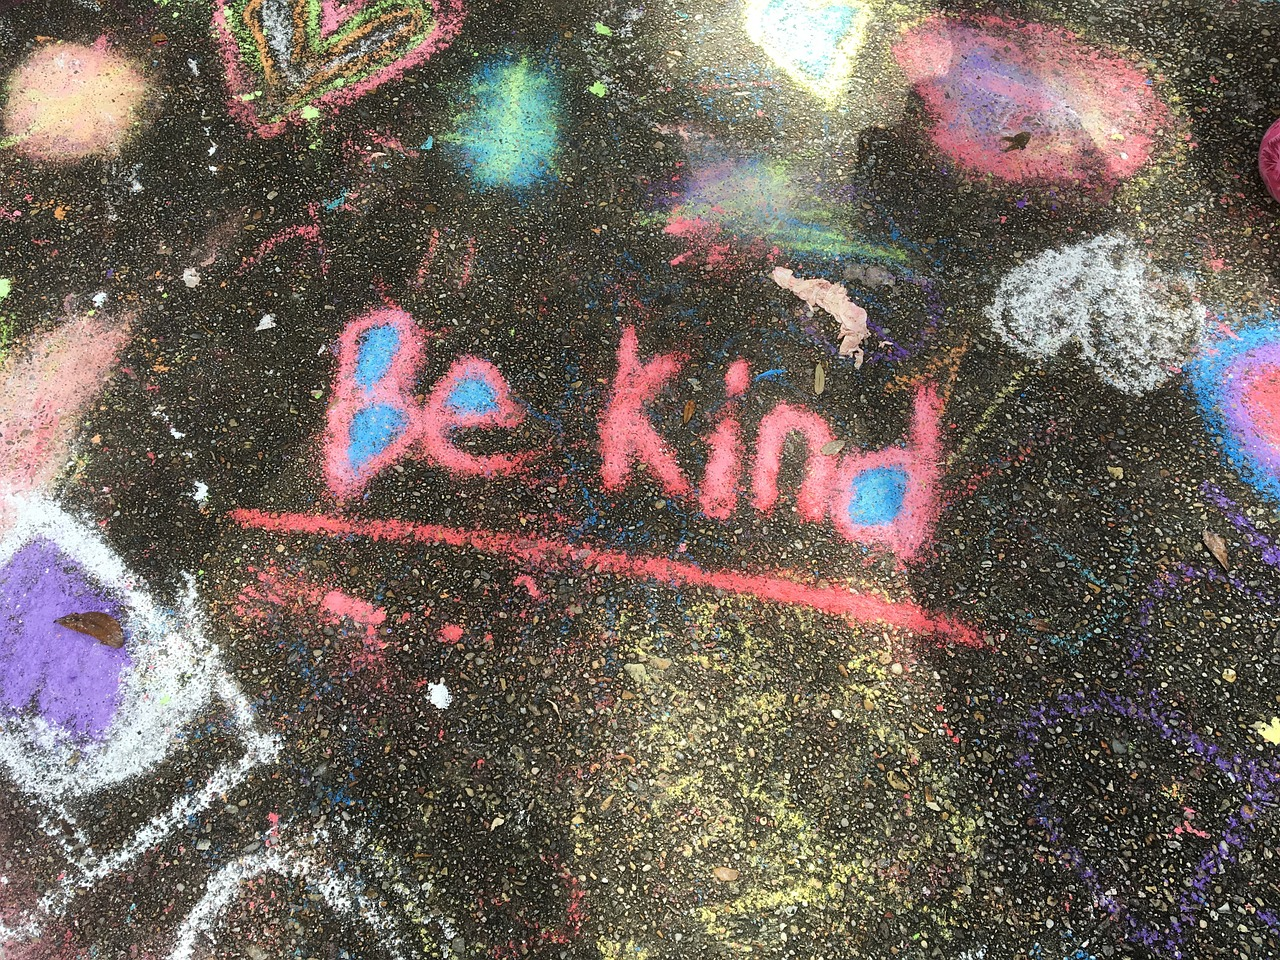 It takes a stronger person to be kind, be kind.